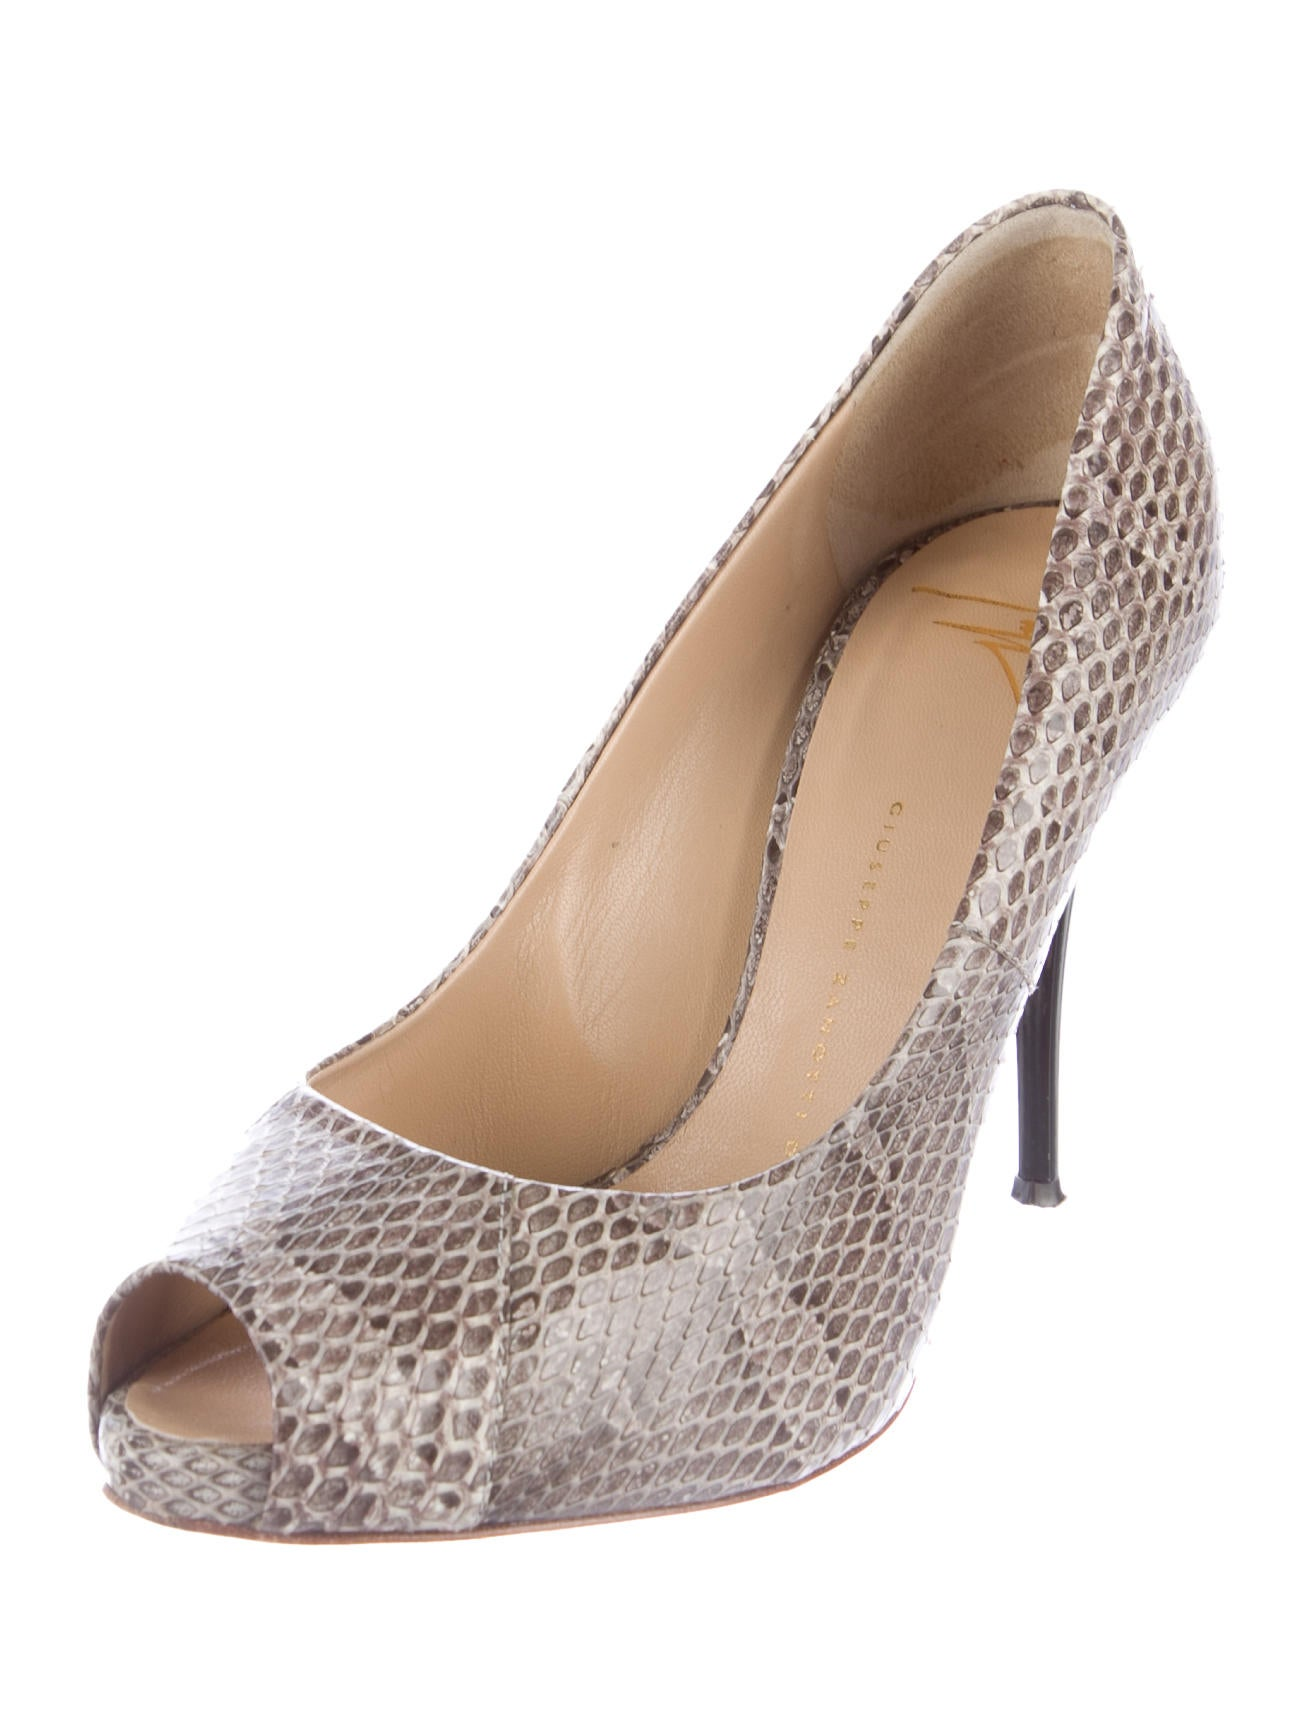 Let Dillard's be your destination for women's pumps, available in regular and extended sizes from all your favorite brands.